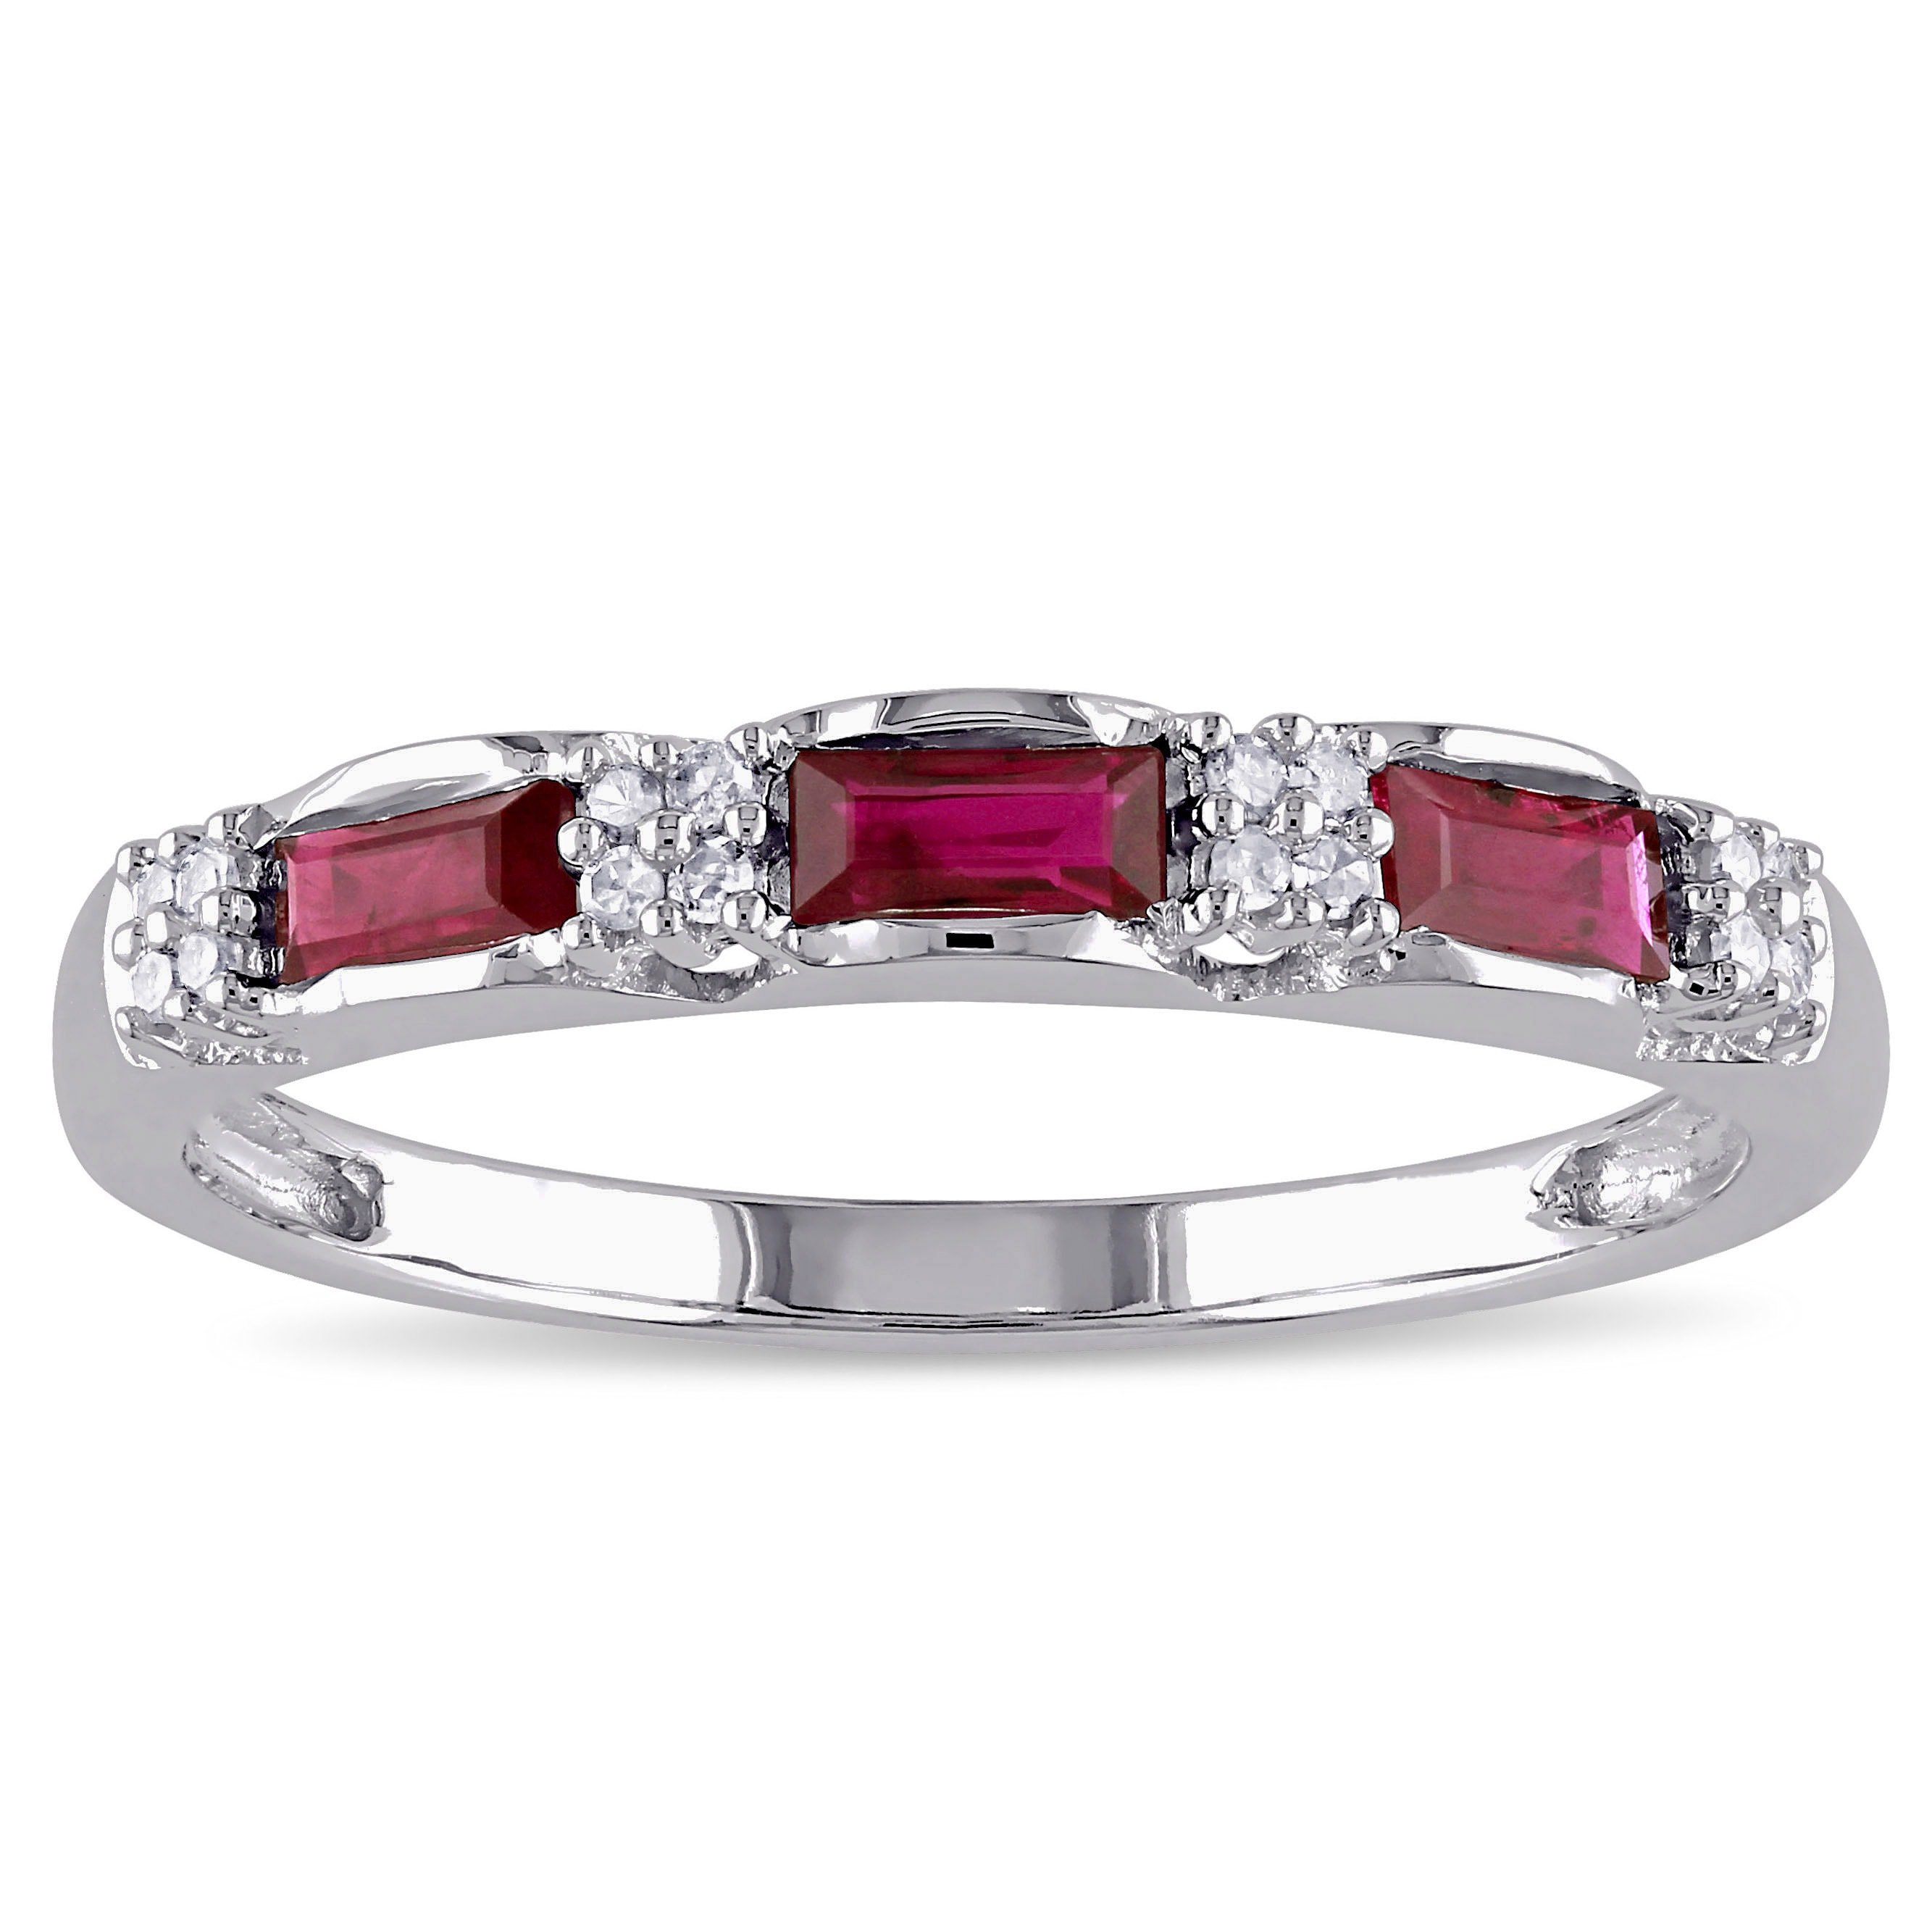 adiamor engagement diamond accent example ruby is trends center celebrity rings off from stylish ring find gemstones shank this a setting latest of the an with blog perfect shows pave by rubysplitshank and round split four inspired